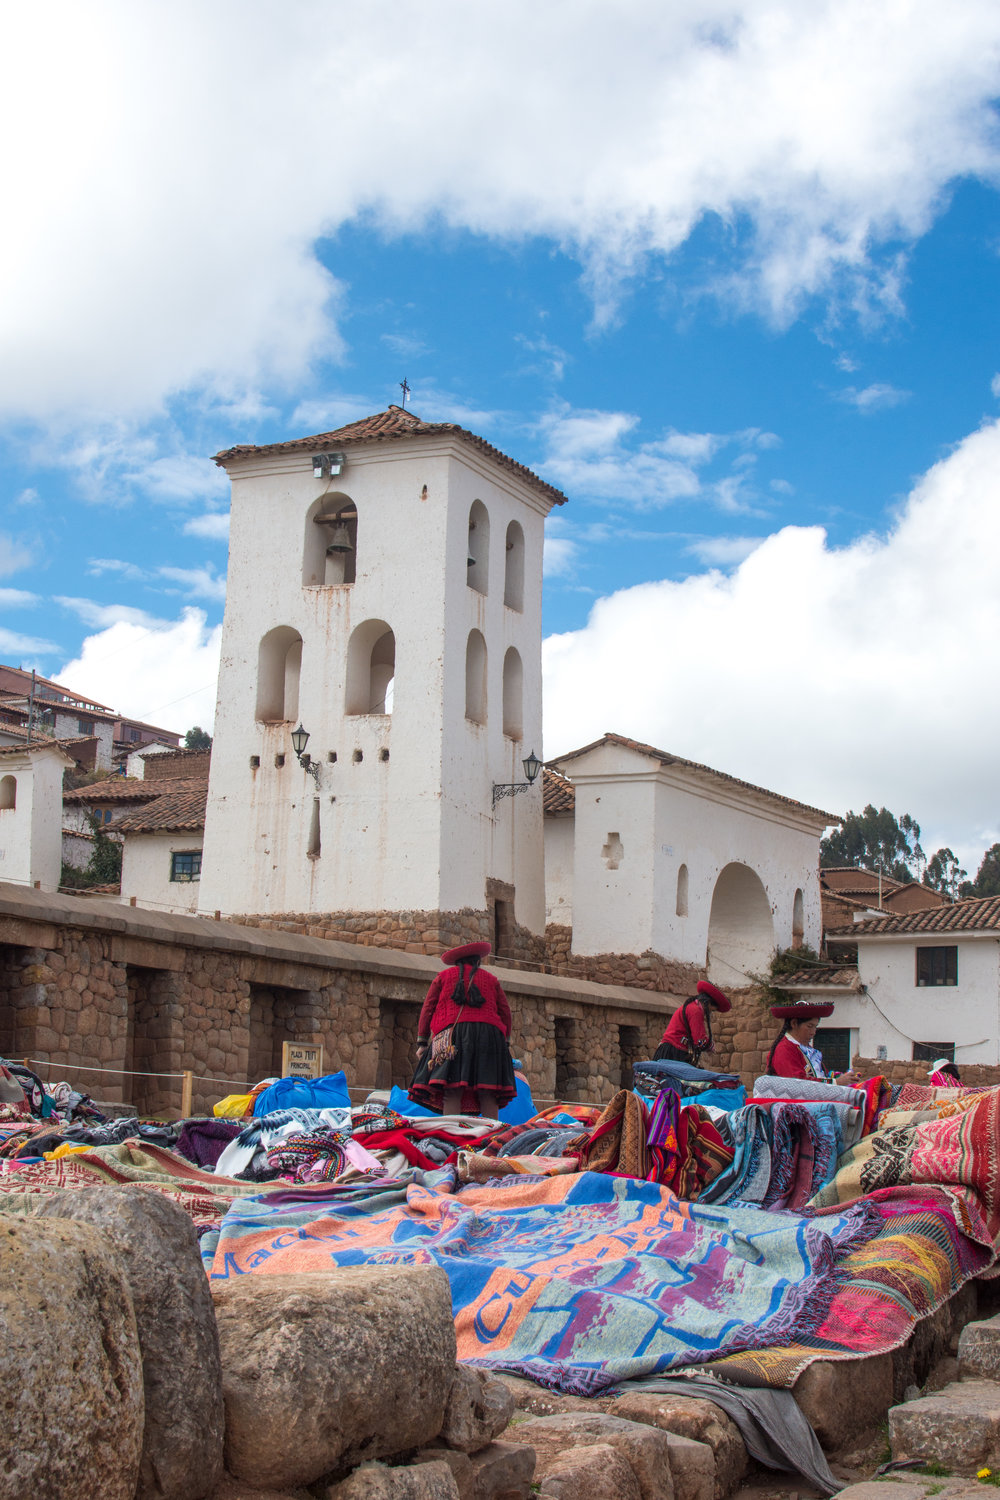 Textile Market at Chinchero